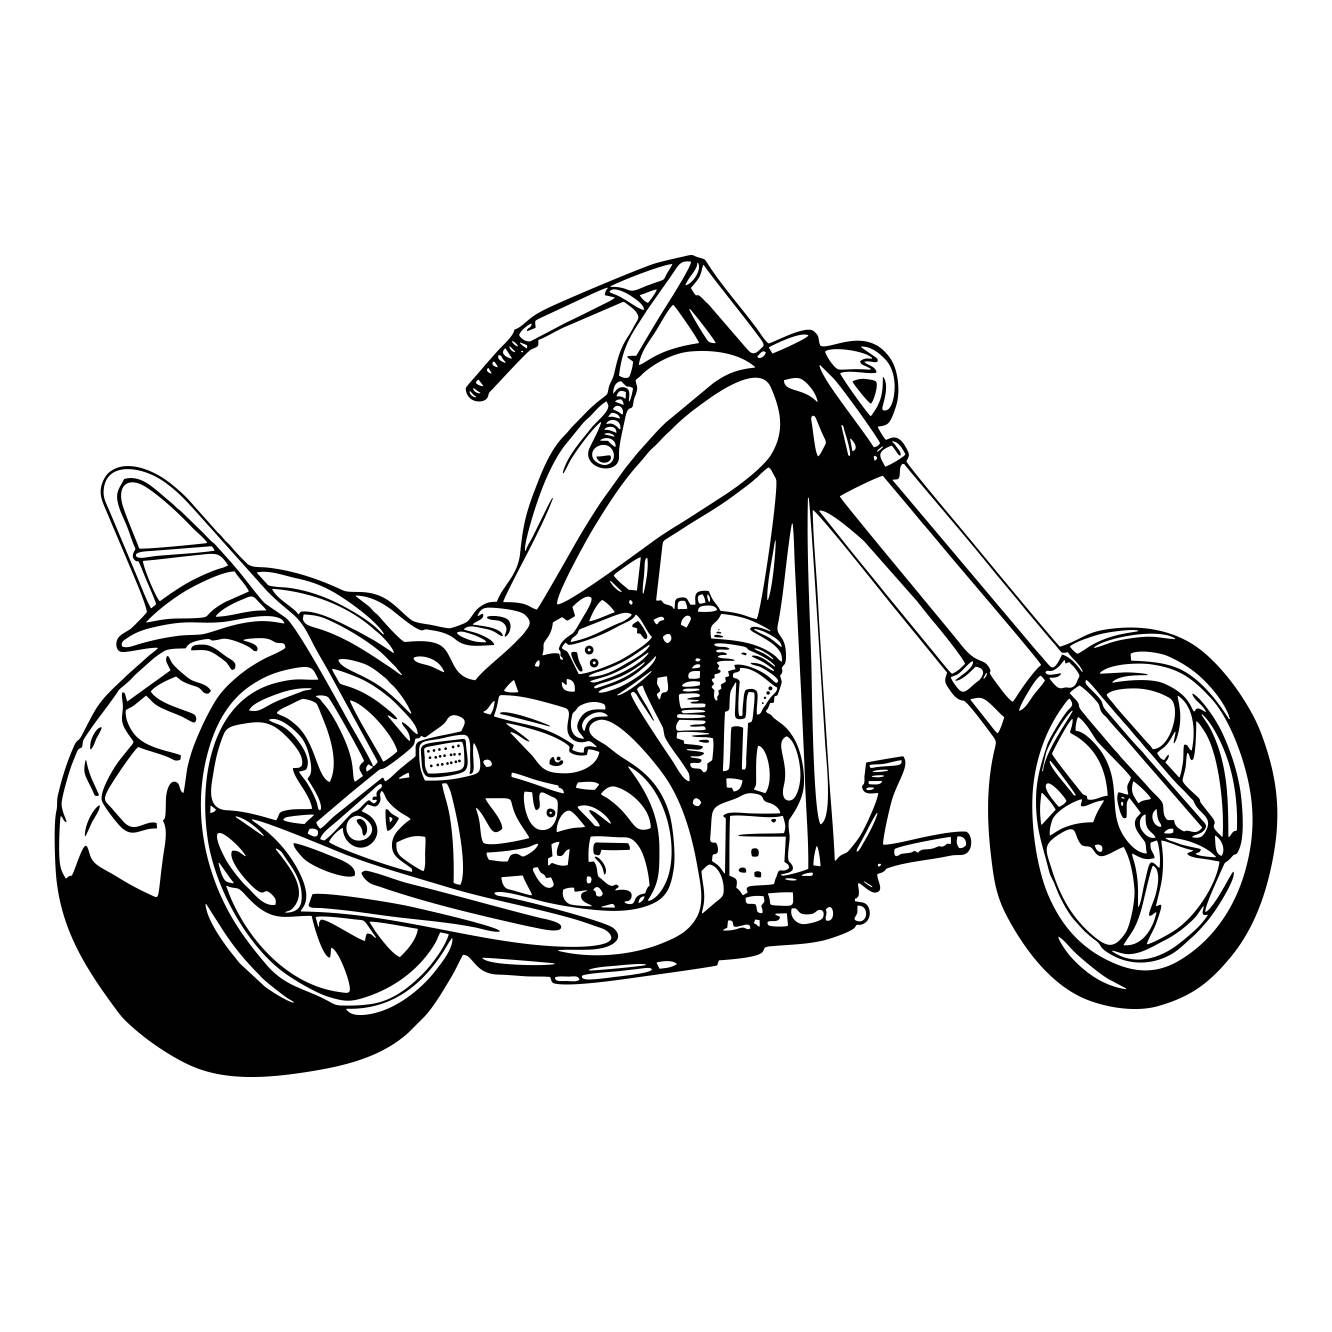 Motorcycle clipart two wheeler. Chopper svg dxf eps